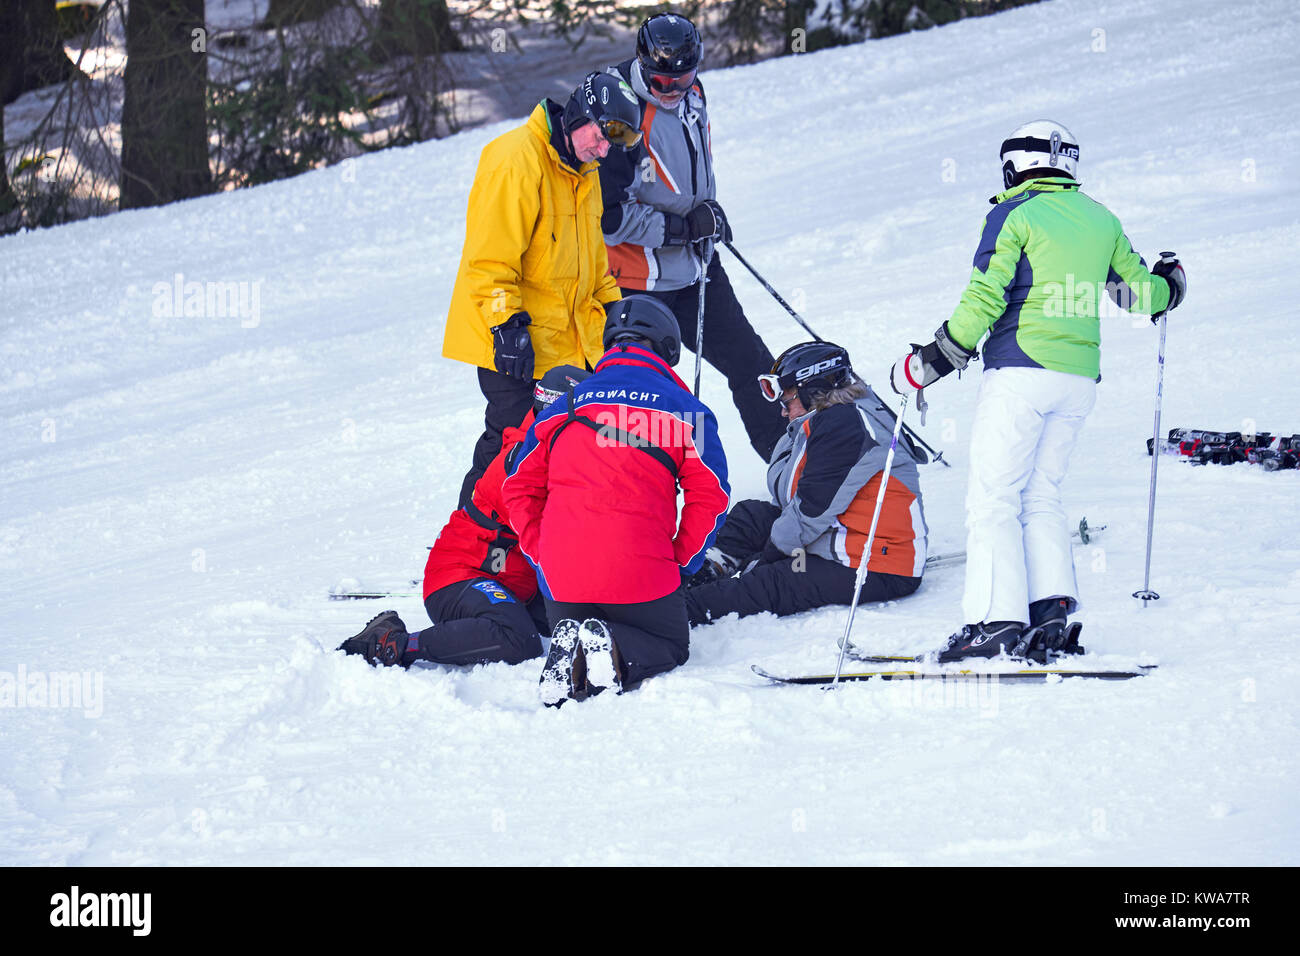 WINTERBERG, GERMANY - FEBRUARY 15, 2017: Rescue team taking care of a woman on a piste at Ski Carousel Winterberg - Stock Image